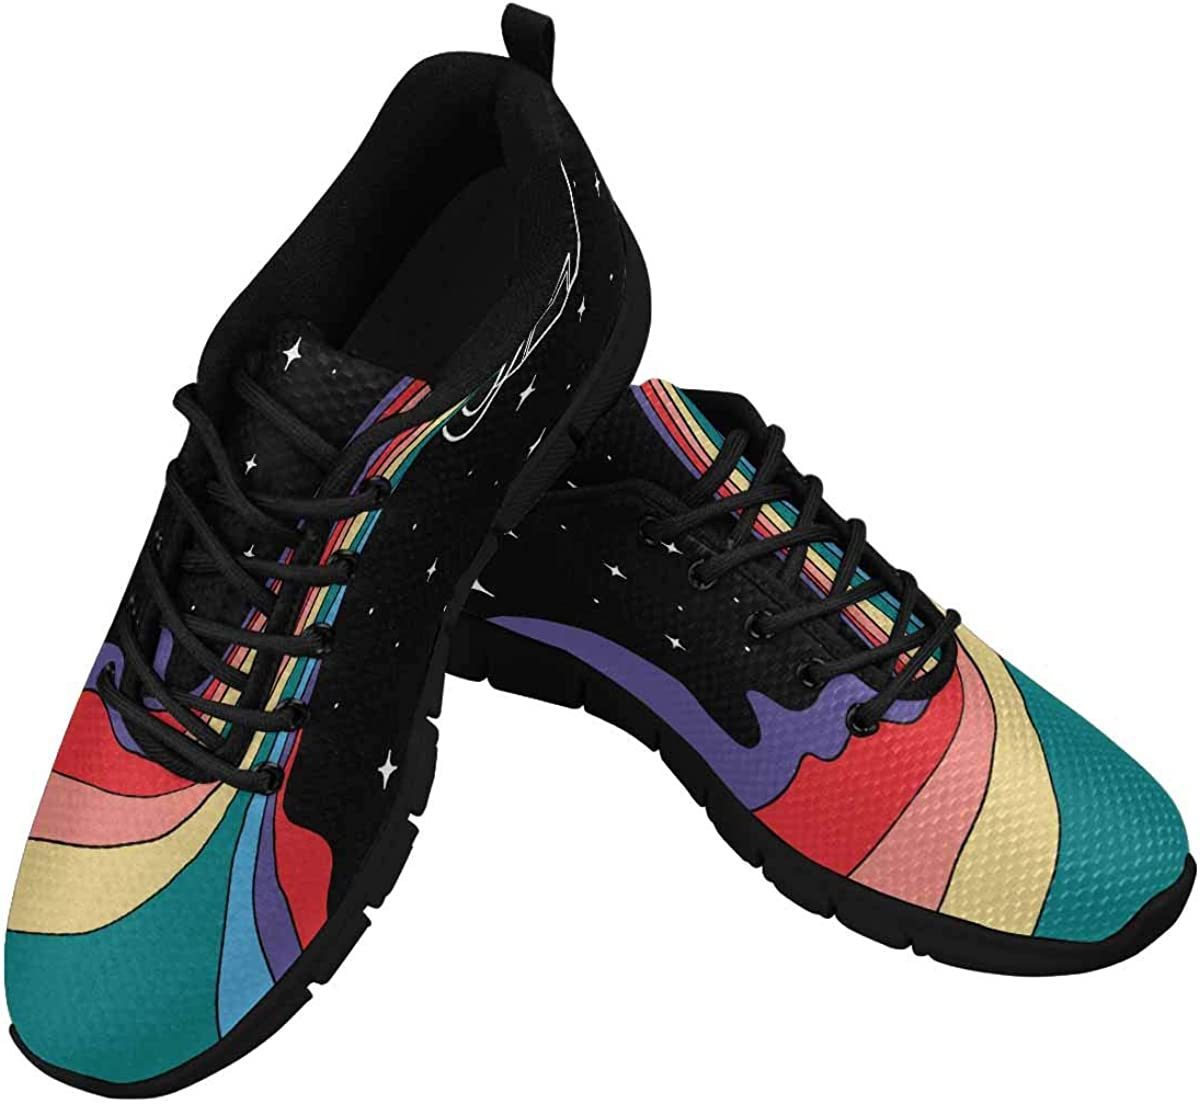 INTERESTPRINT Colorful Can of Paint with Rainbow Lightweight Mesh Breathable Sneakers for Women